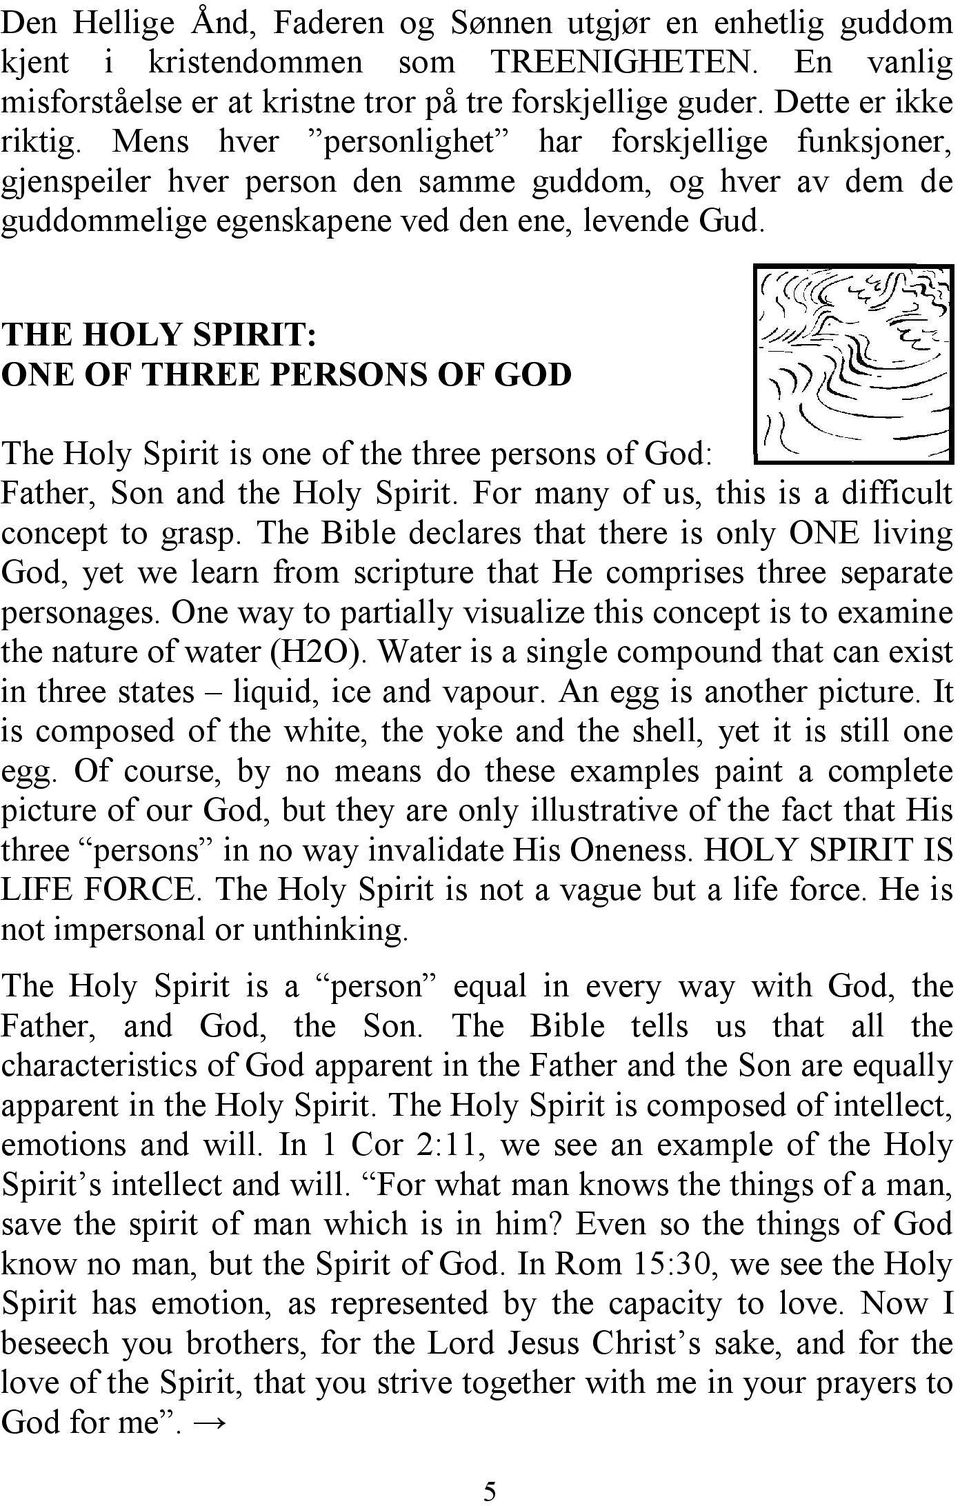 THE HOLY SPIRIT: ONE OF THREE PERSONS OF GOD The Holy Spirit is one of the three persons of God: Father, Son and the Holy Spirit. For many of us, this is a difficult concept to grasp.